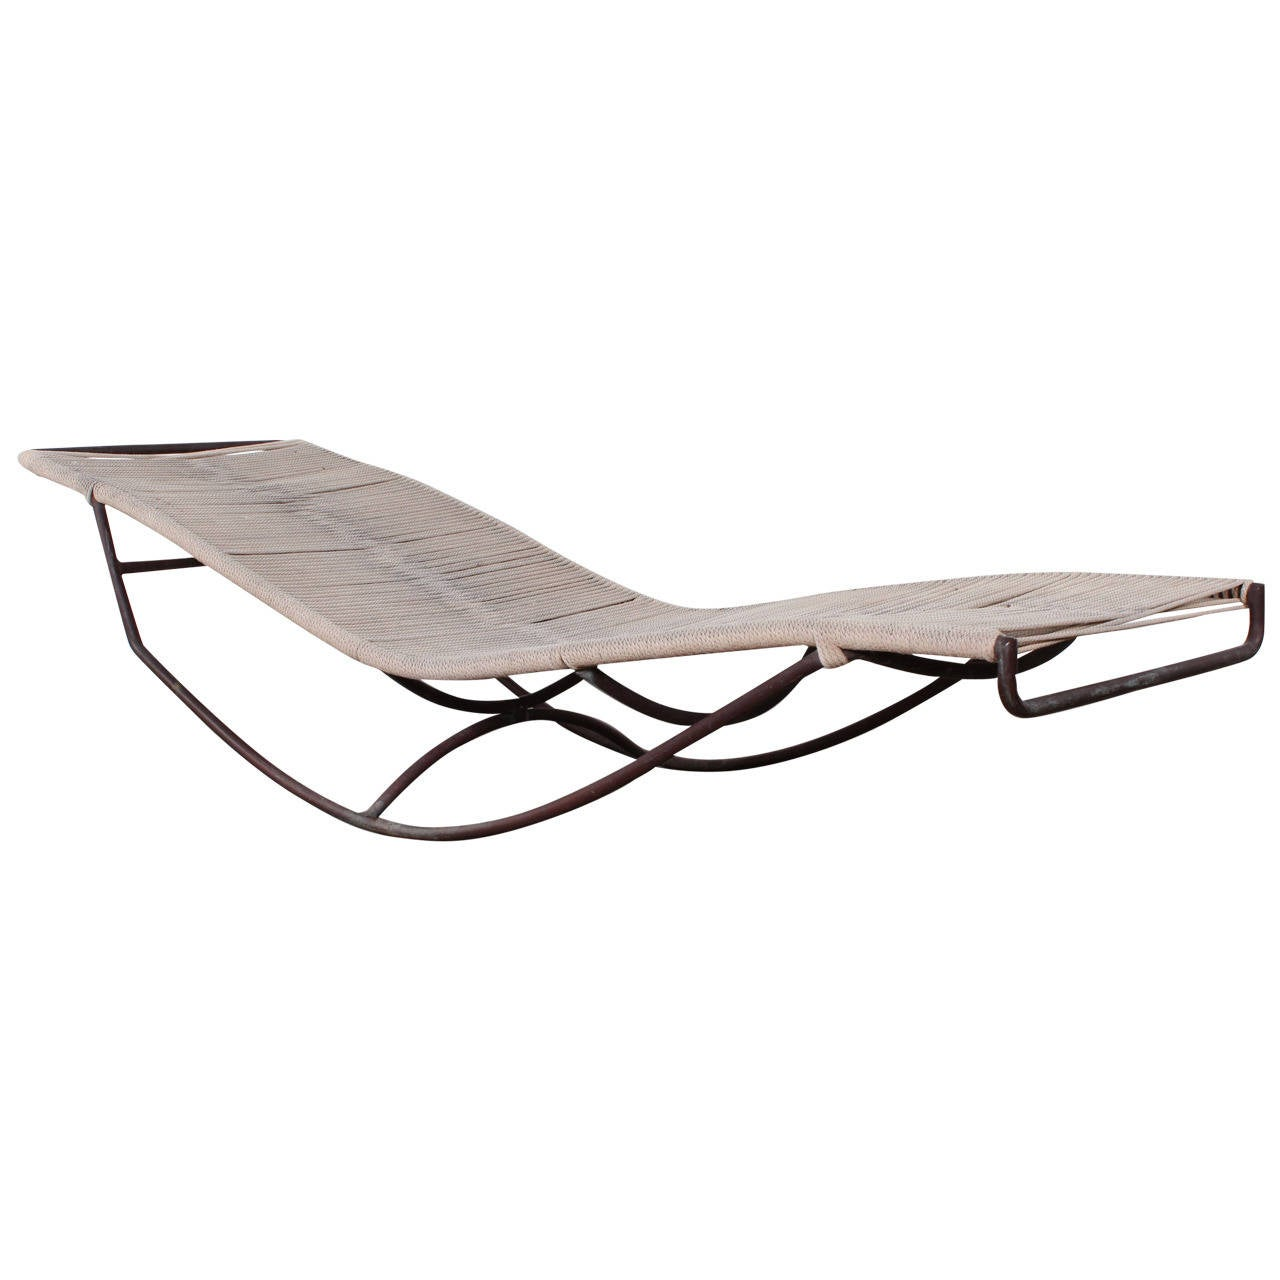 Bronze rocking waikiki chaise longue by walter lamb at for Bronze chaise lounge